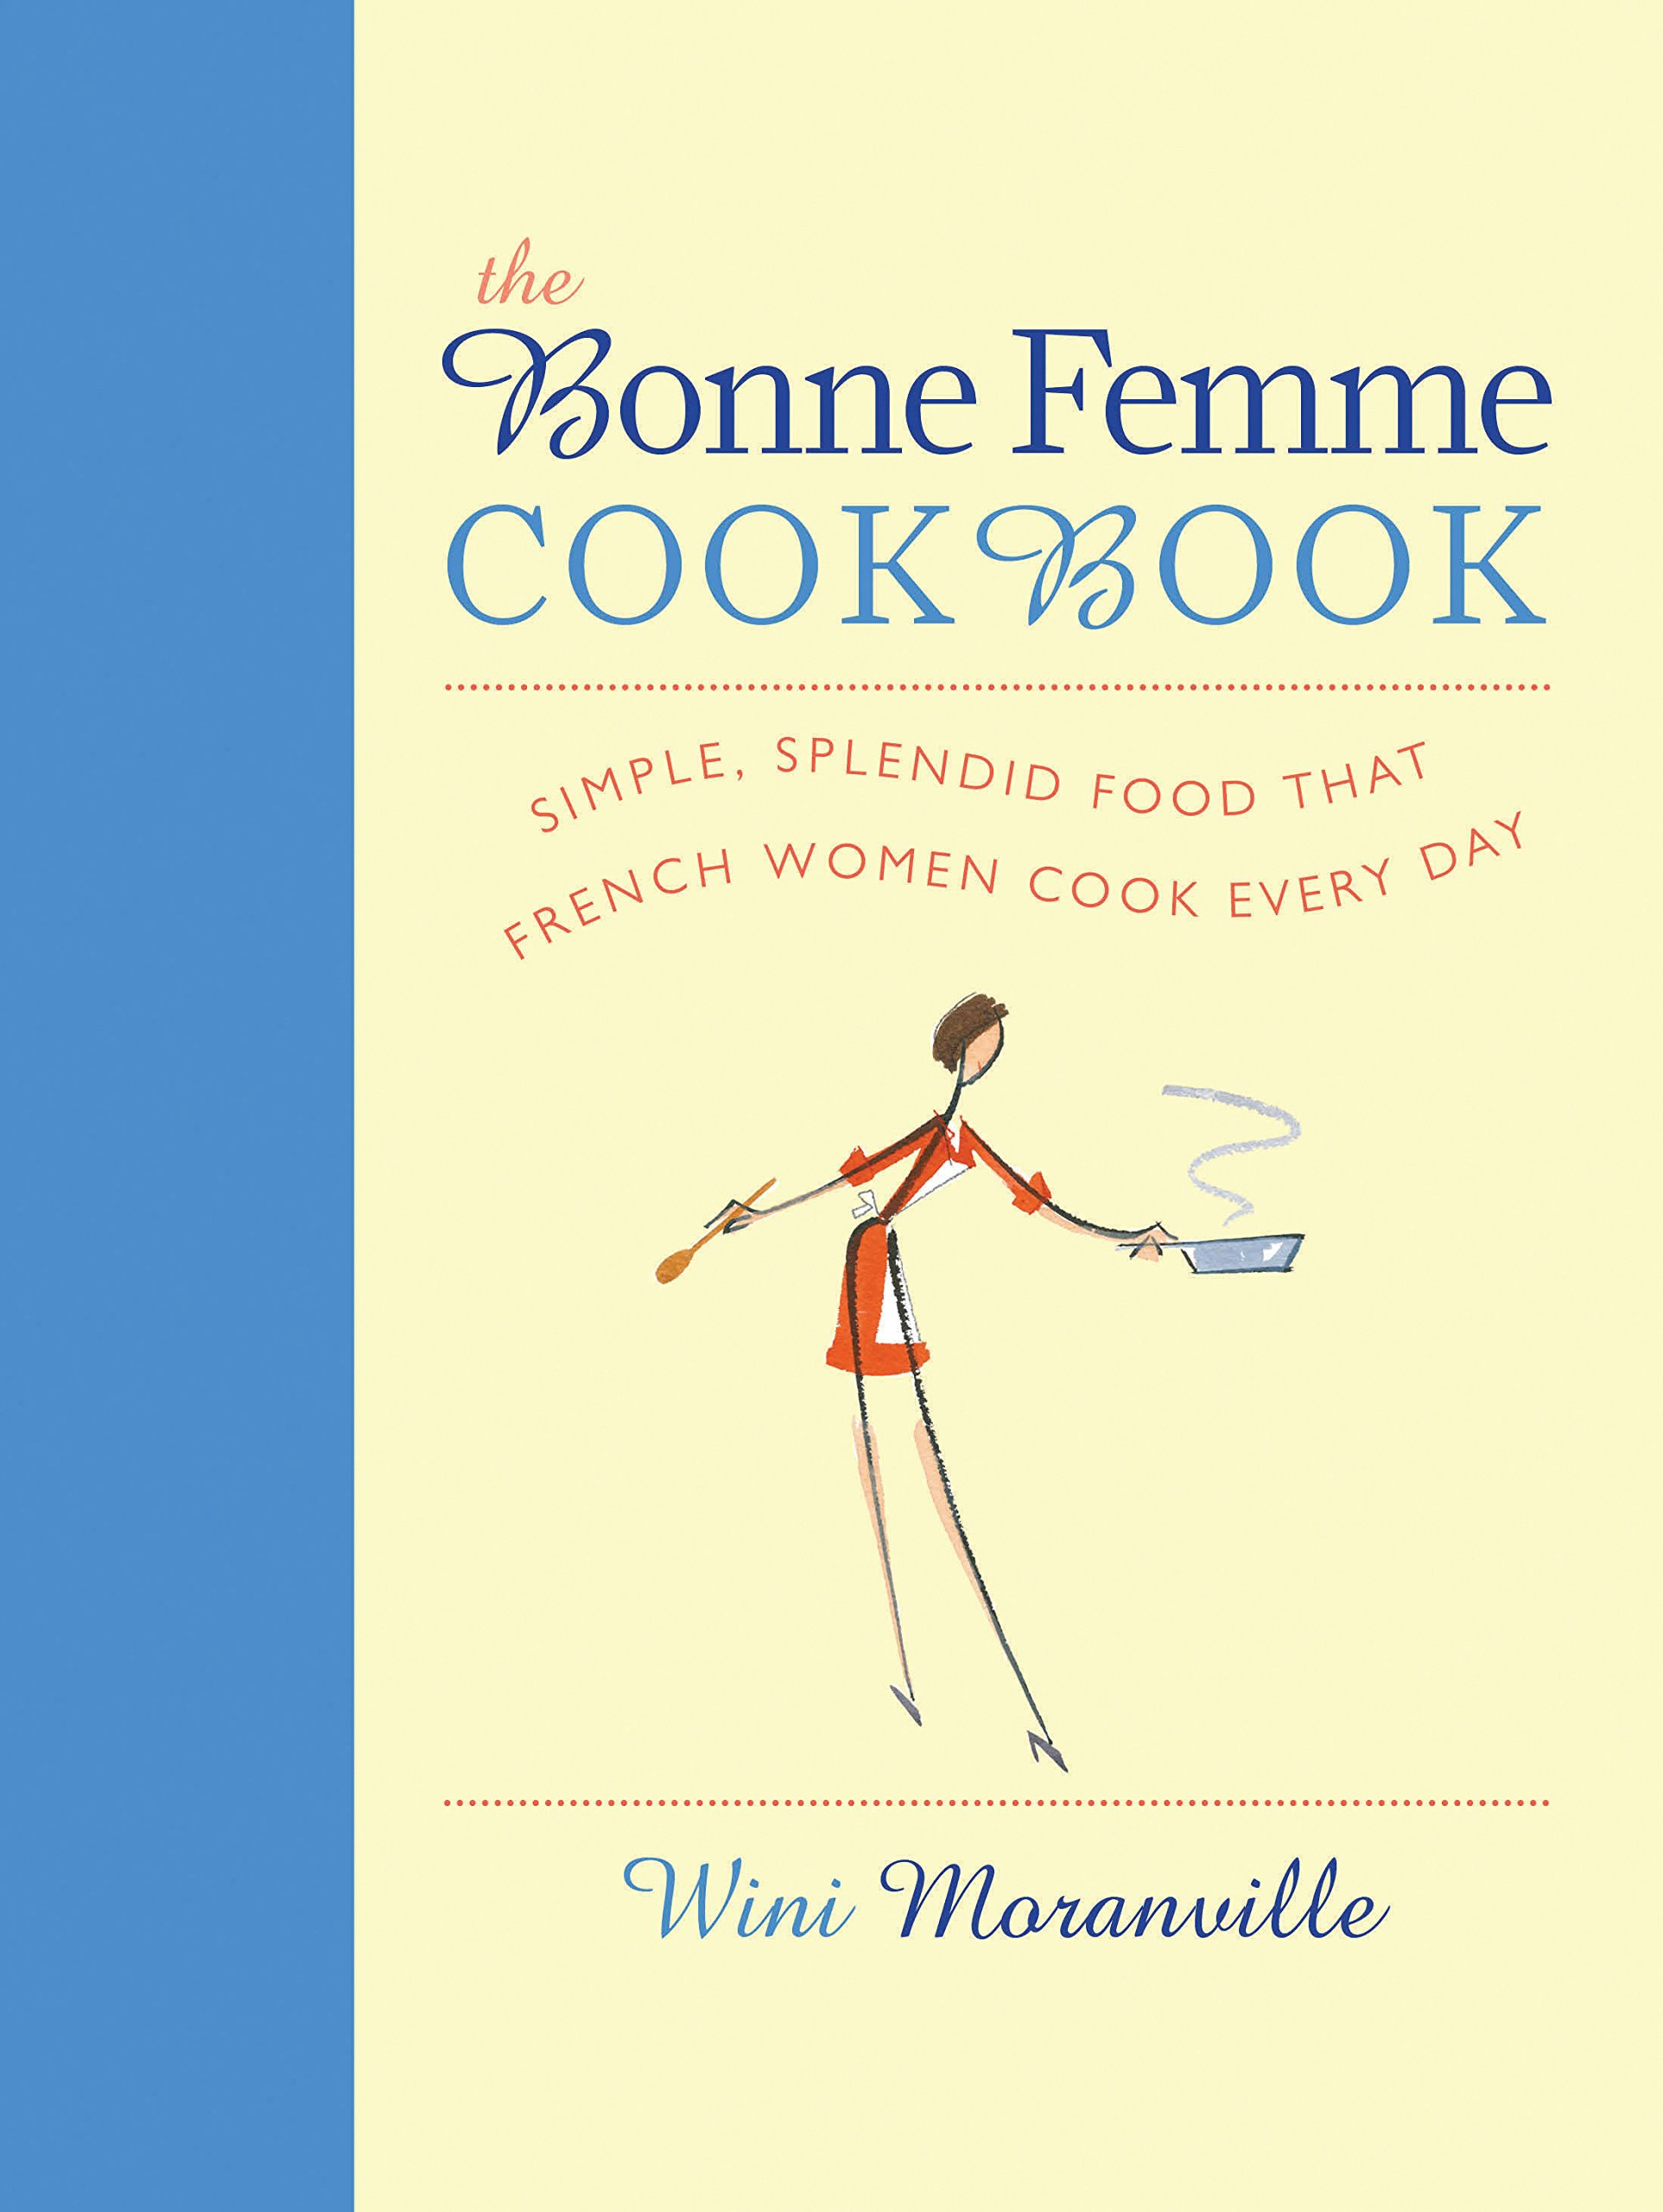 The Bonne Femme Cookbook: Simple, Splendid Food That French Women Cook Every Day by Harvard Common Press